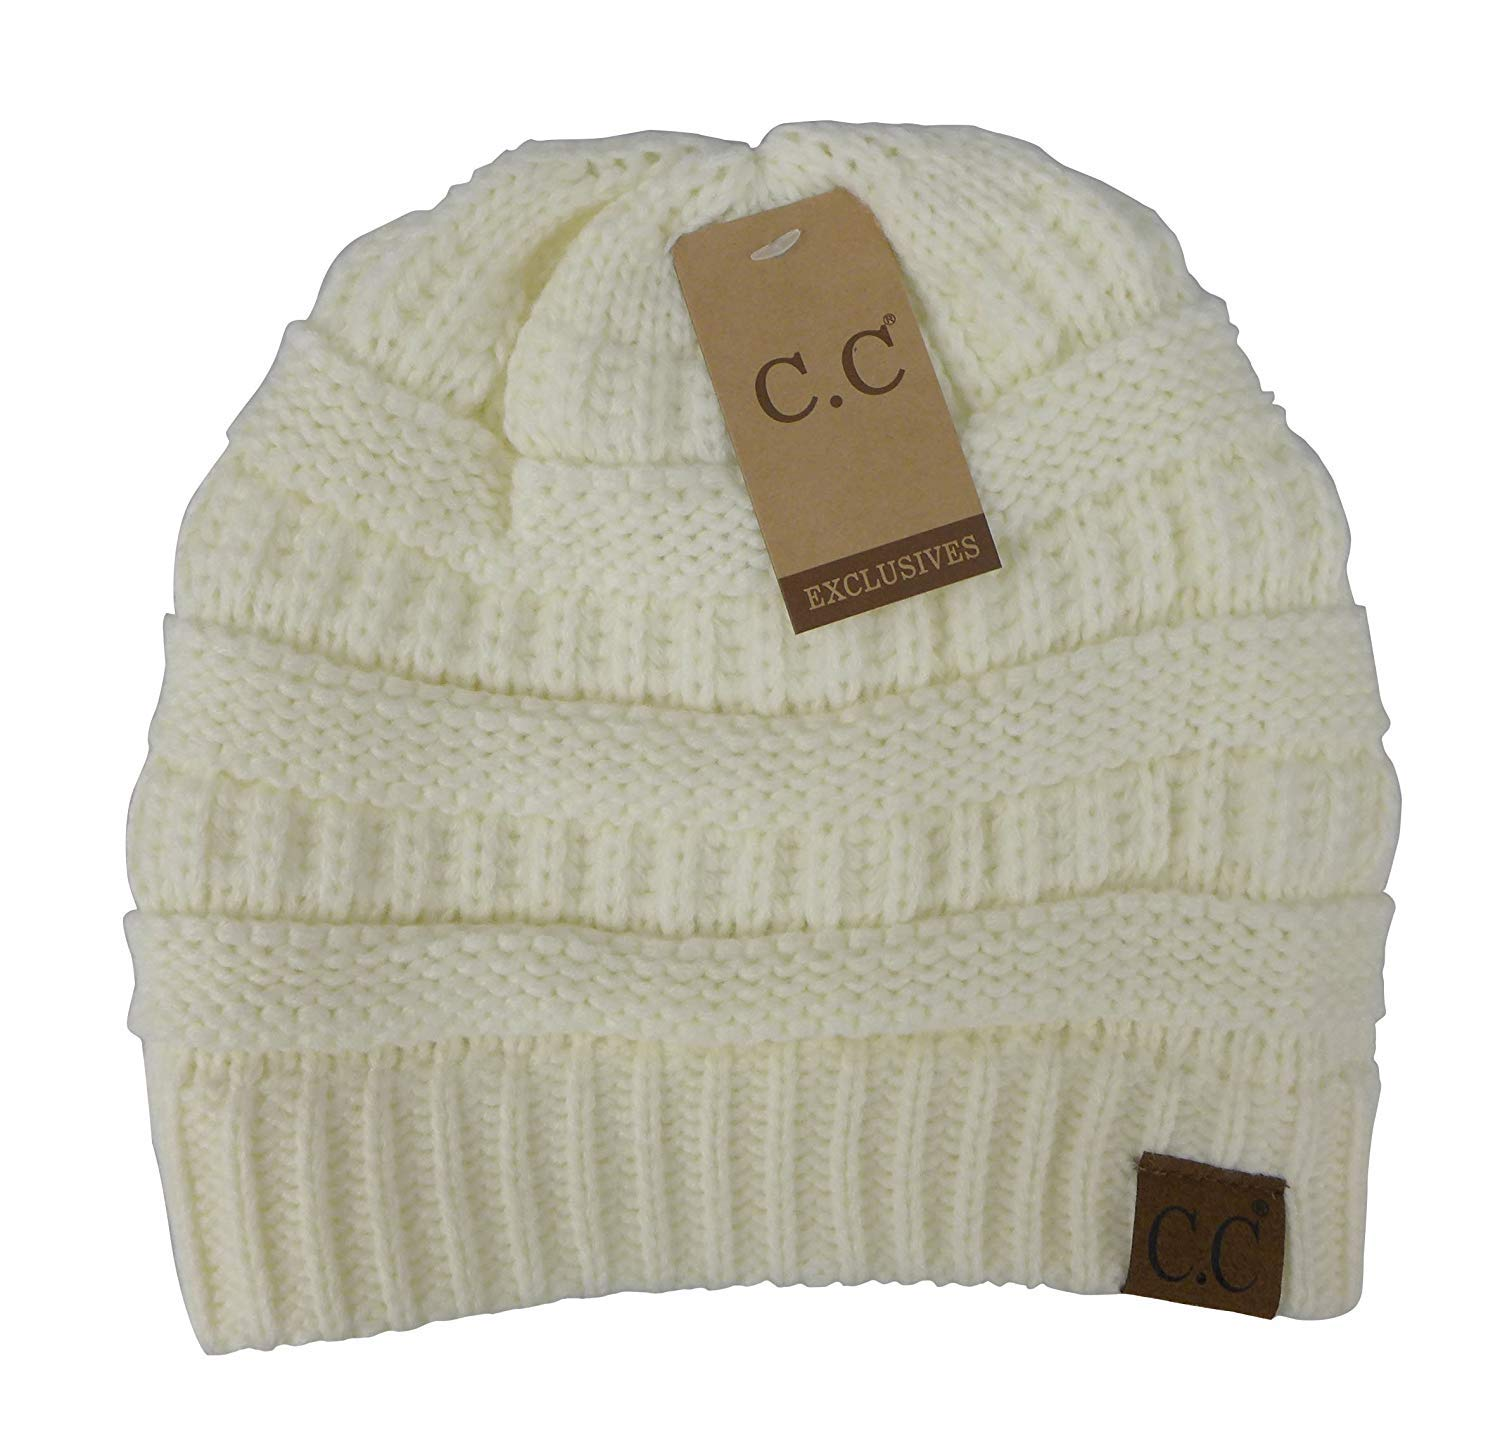 Crane Clothing Co. Women's Classic CC Beanies - Ivory